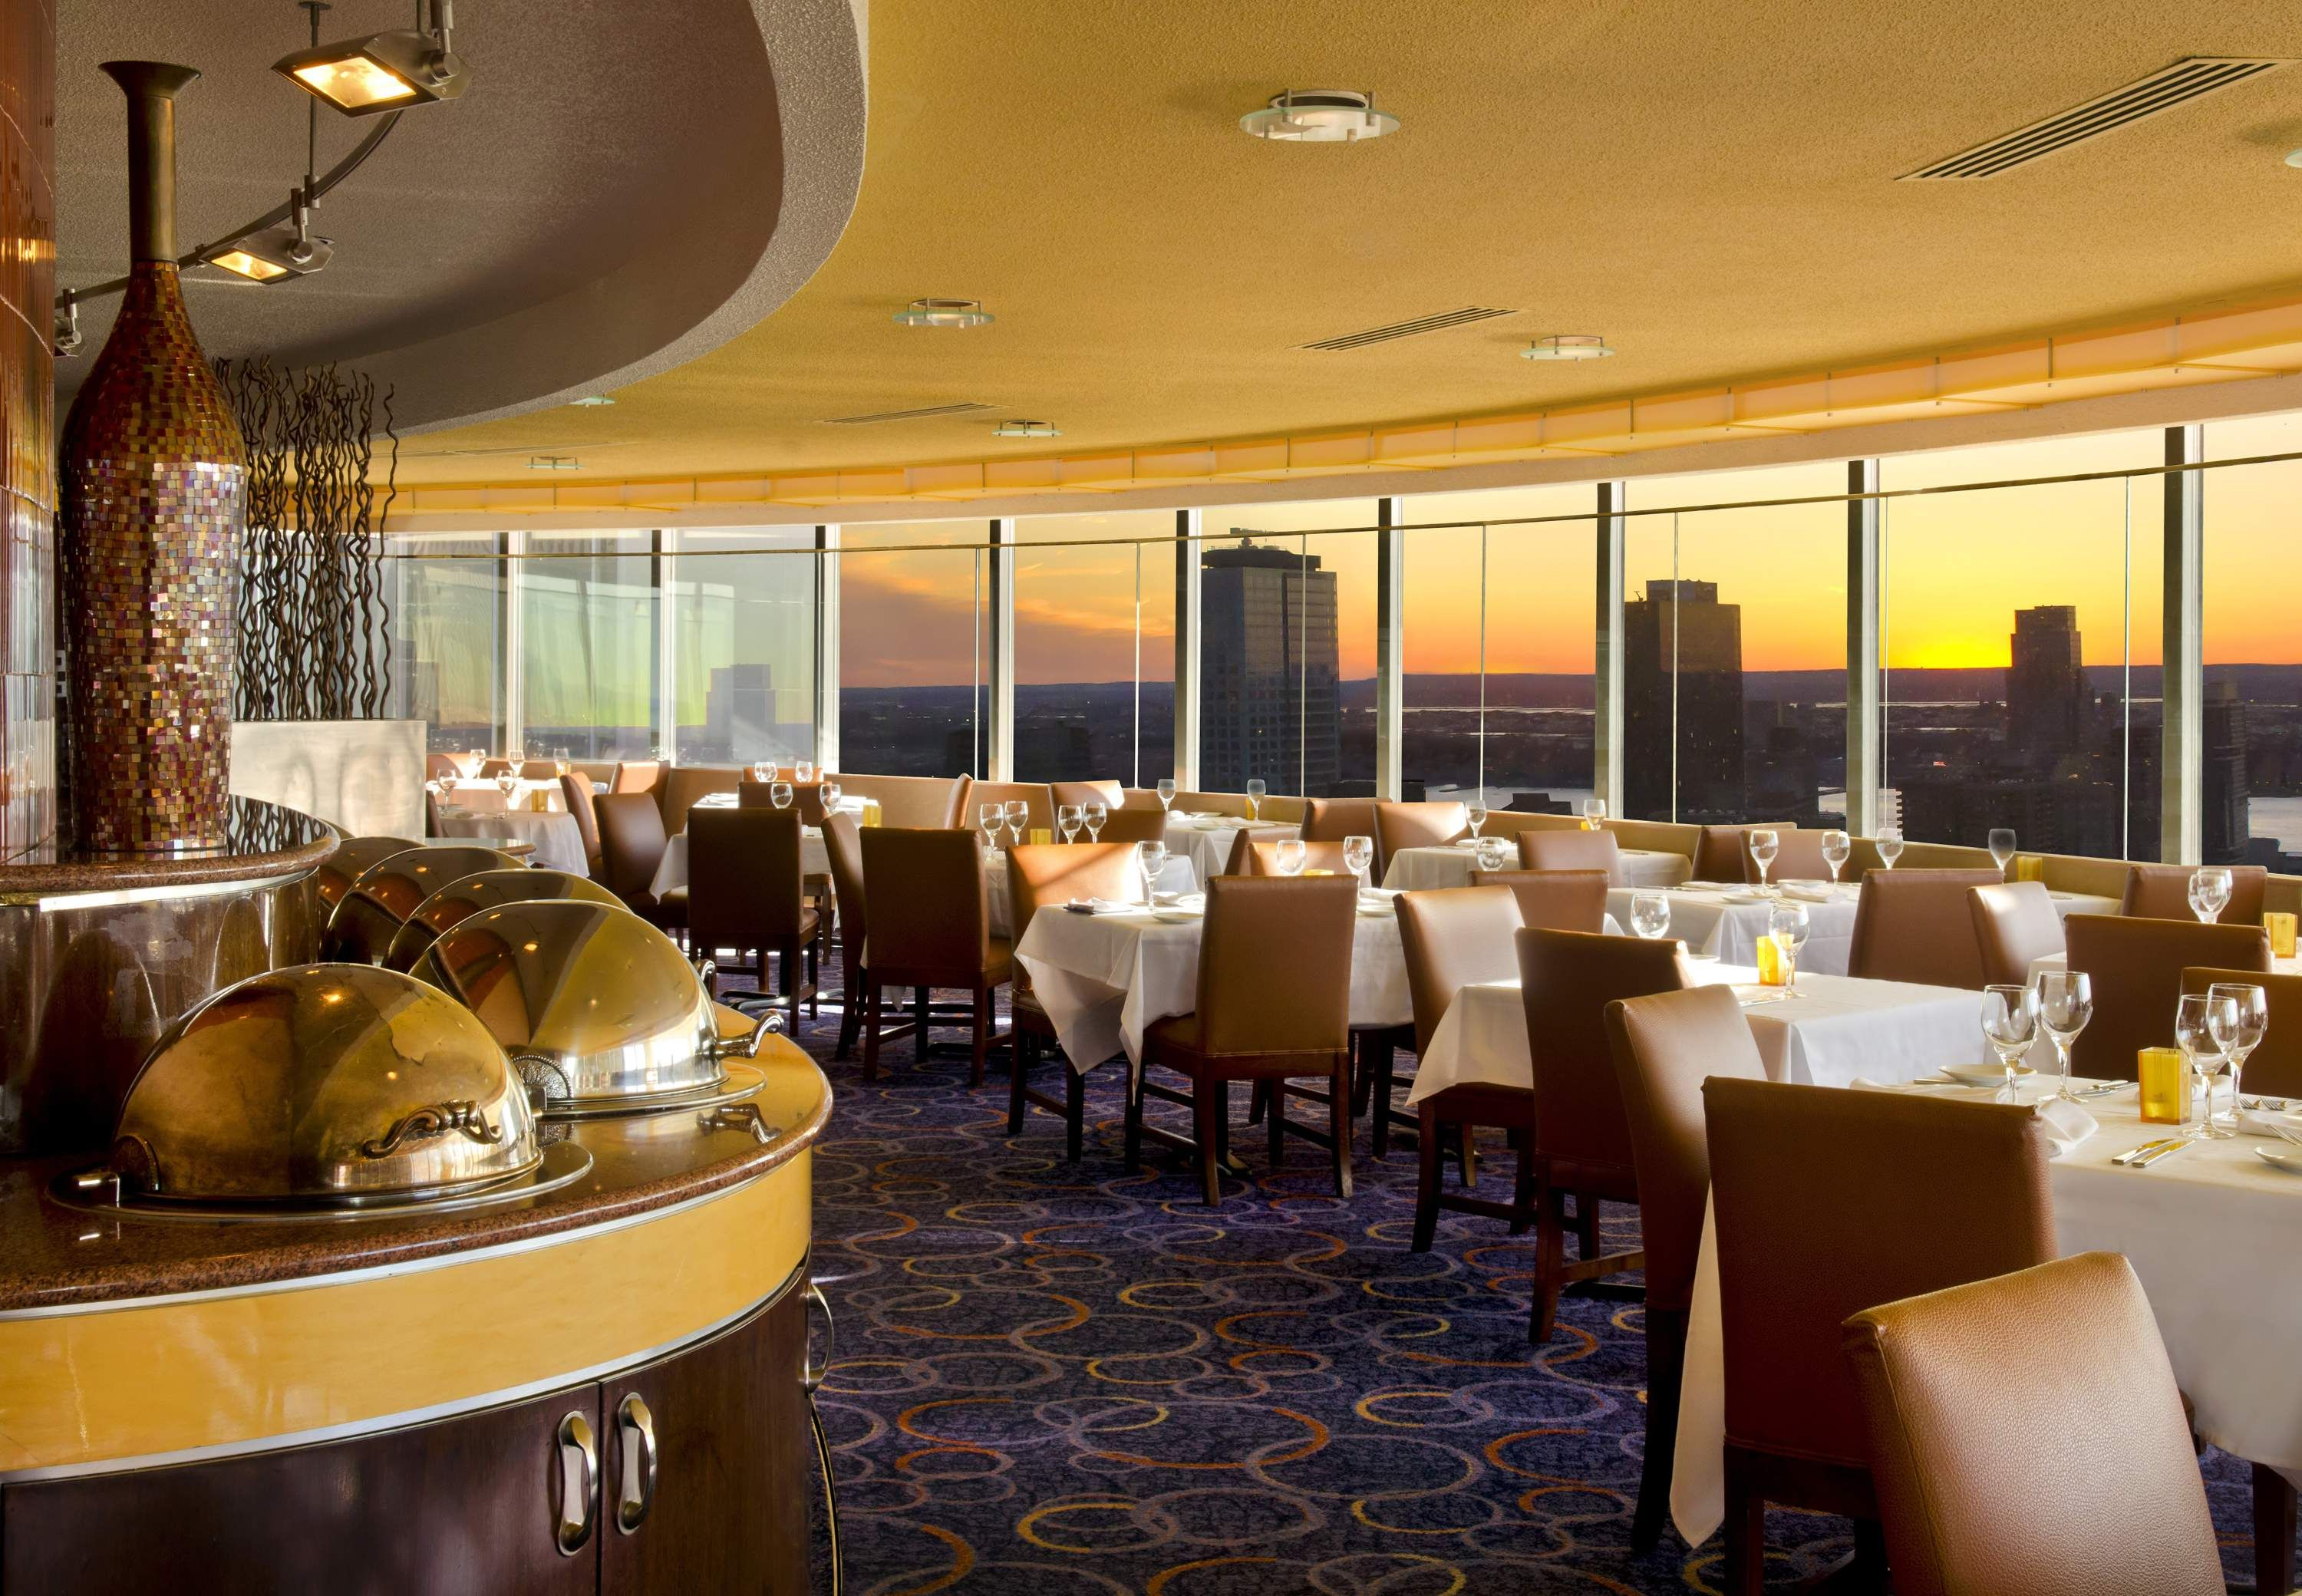 Cucina Revolving Restaurant The View Is Formal Fine Dining Experience Featuring A Lunch